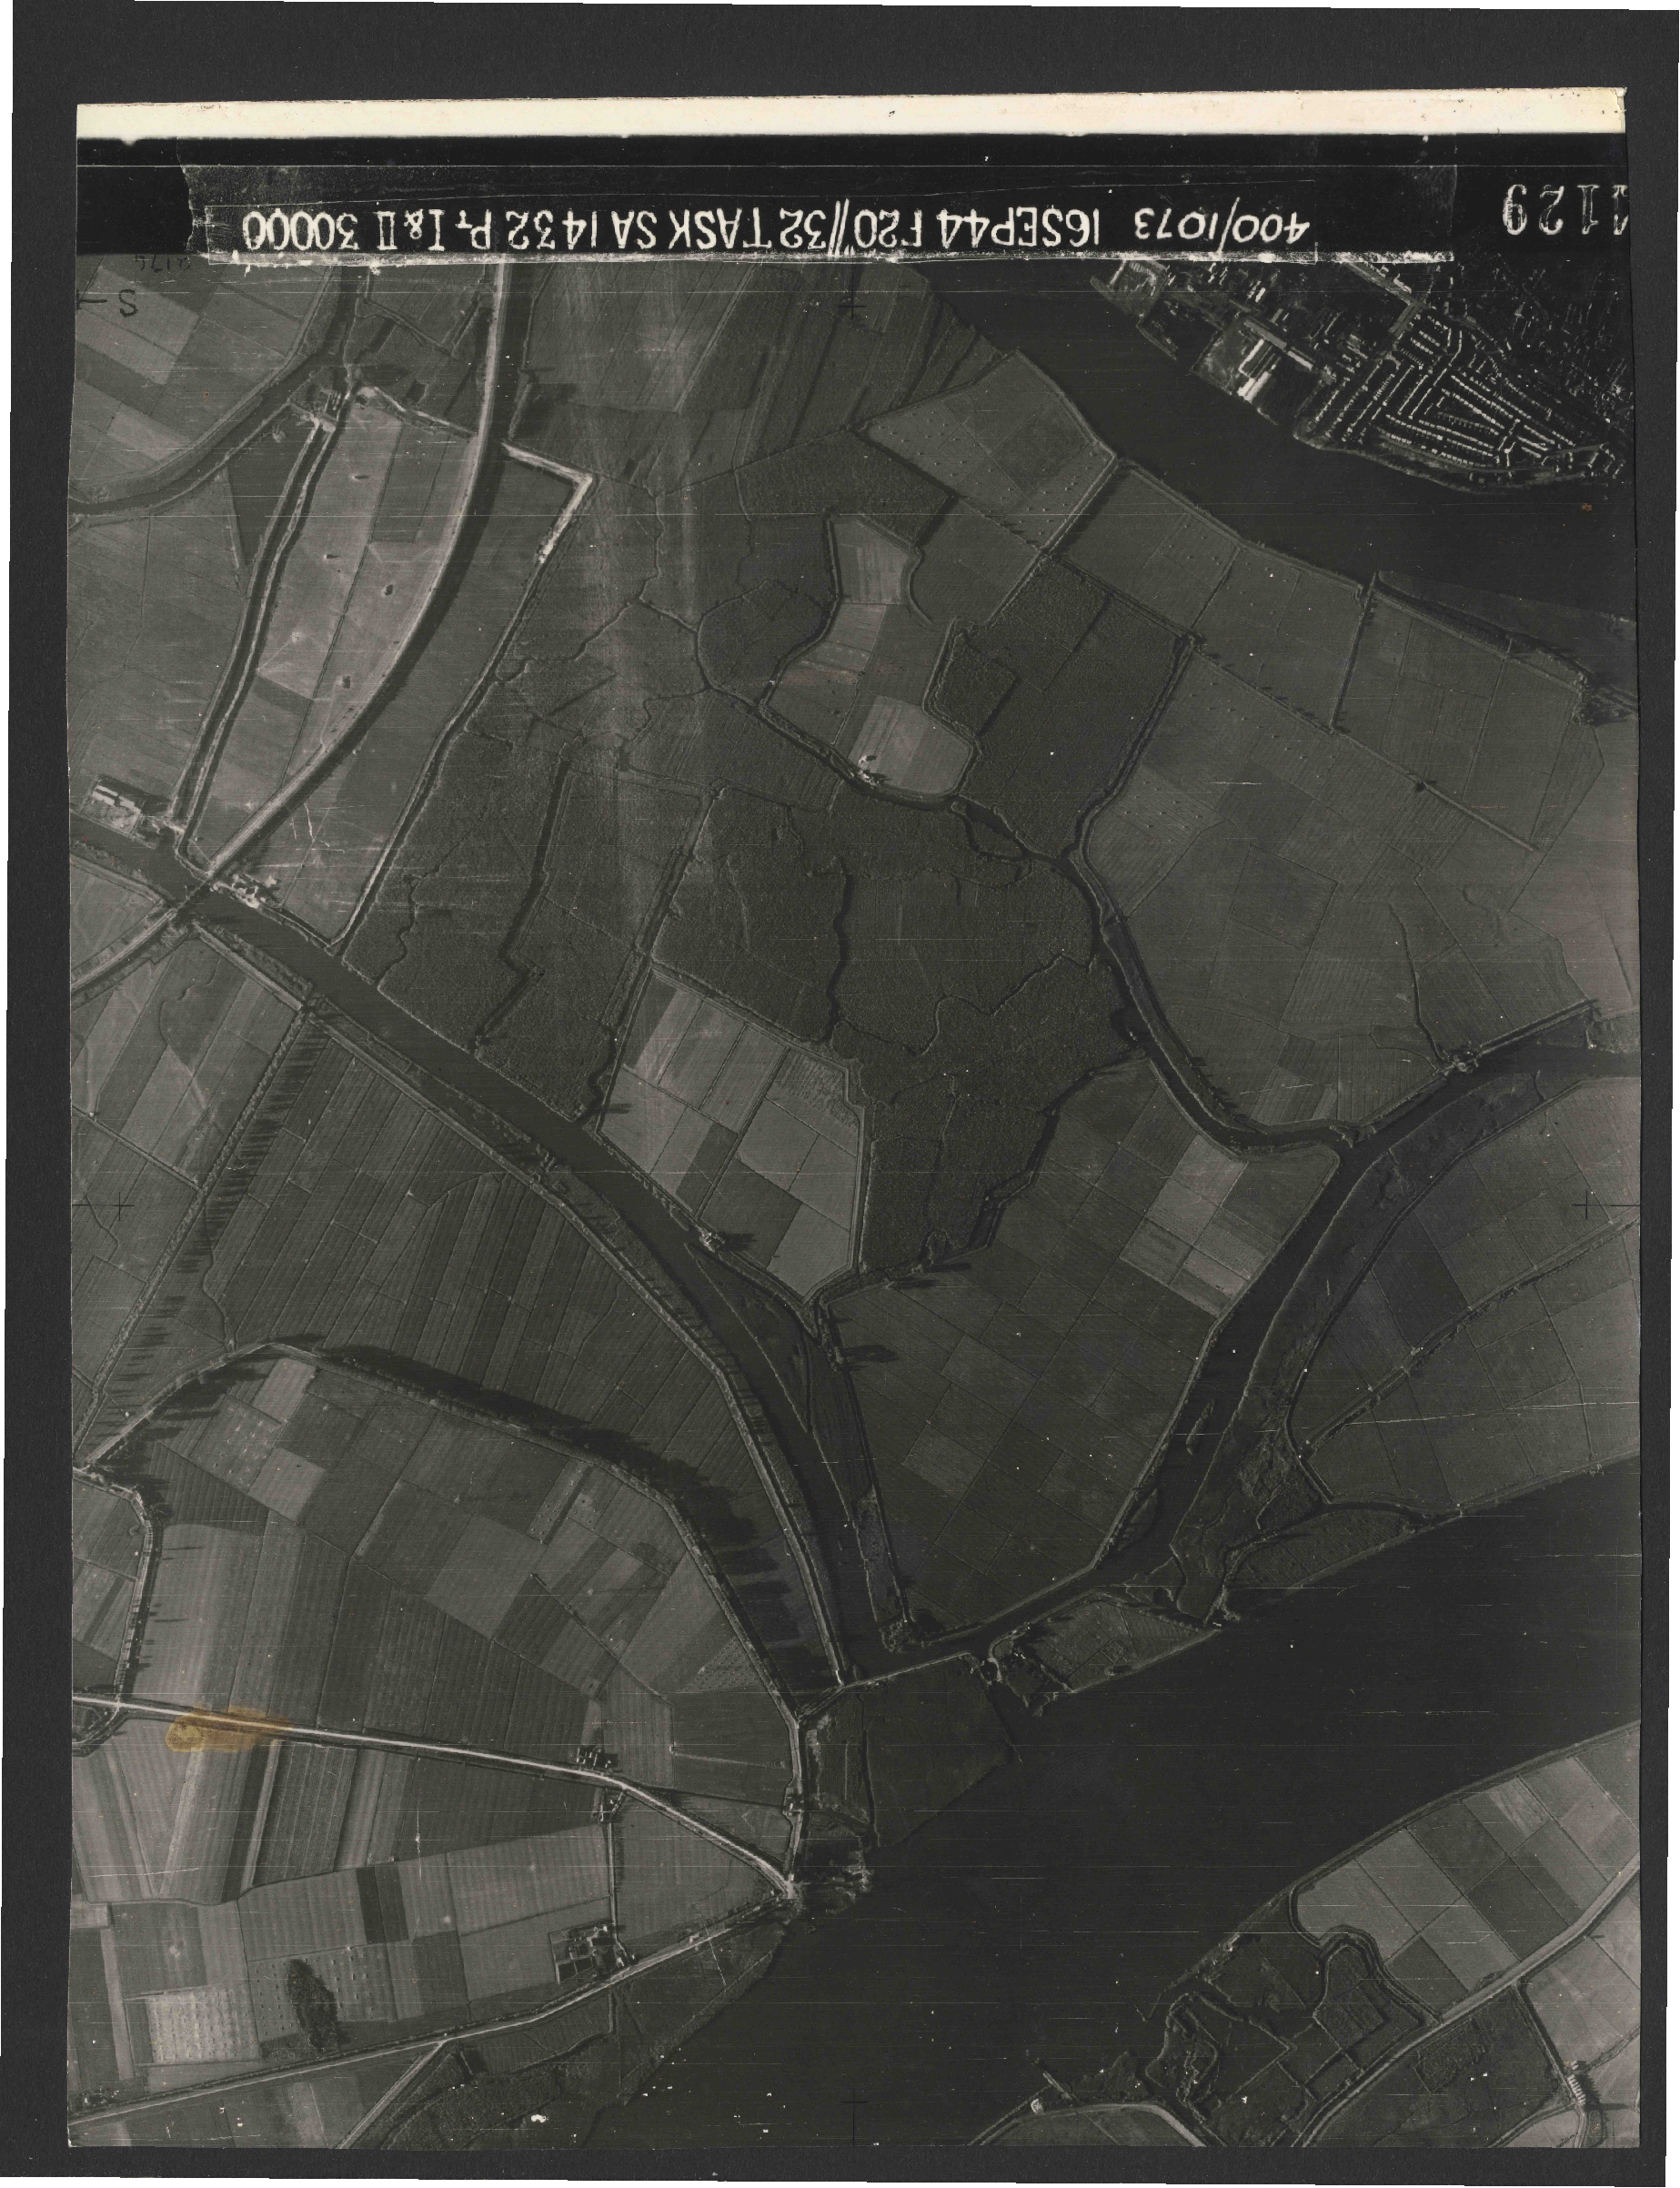 Collection RAF aerial photos 1940-1945 - flight 013, run 02, photo 4129